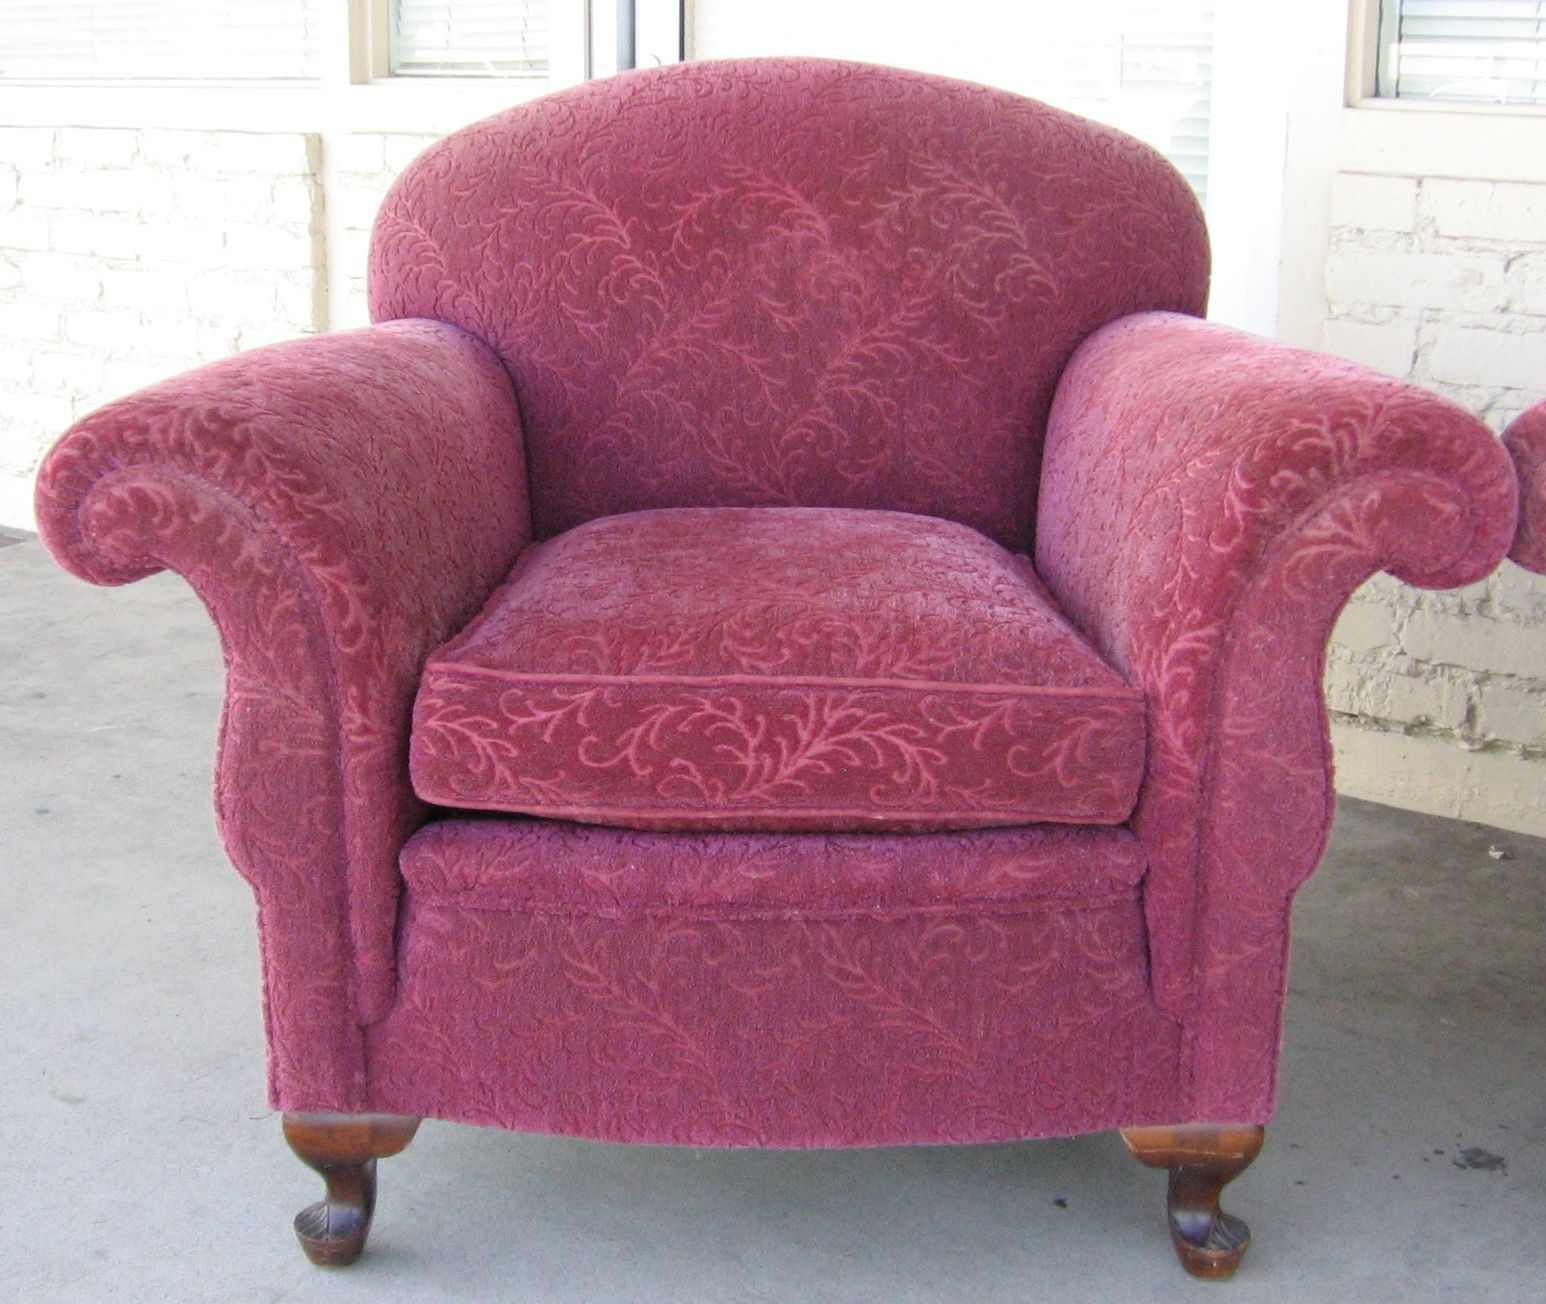 1930's upholstered furniture images - Google Search · Overstuffed ChairsReading  ChairsUpholstered FurniturePink FurnitureLiving Room ... - 1930's Upholstered Furniture Images - Google Search 1930's